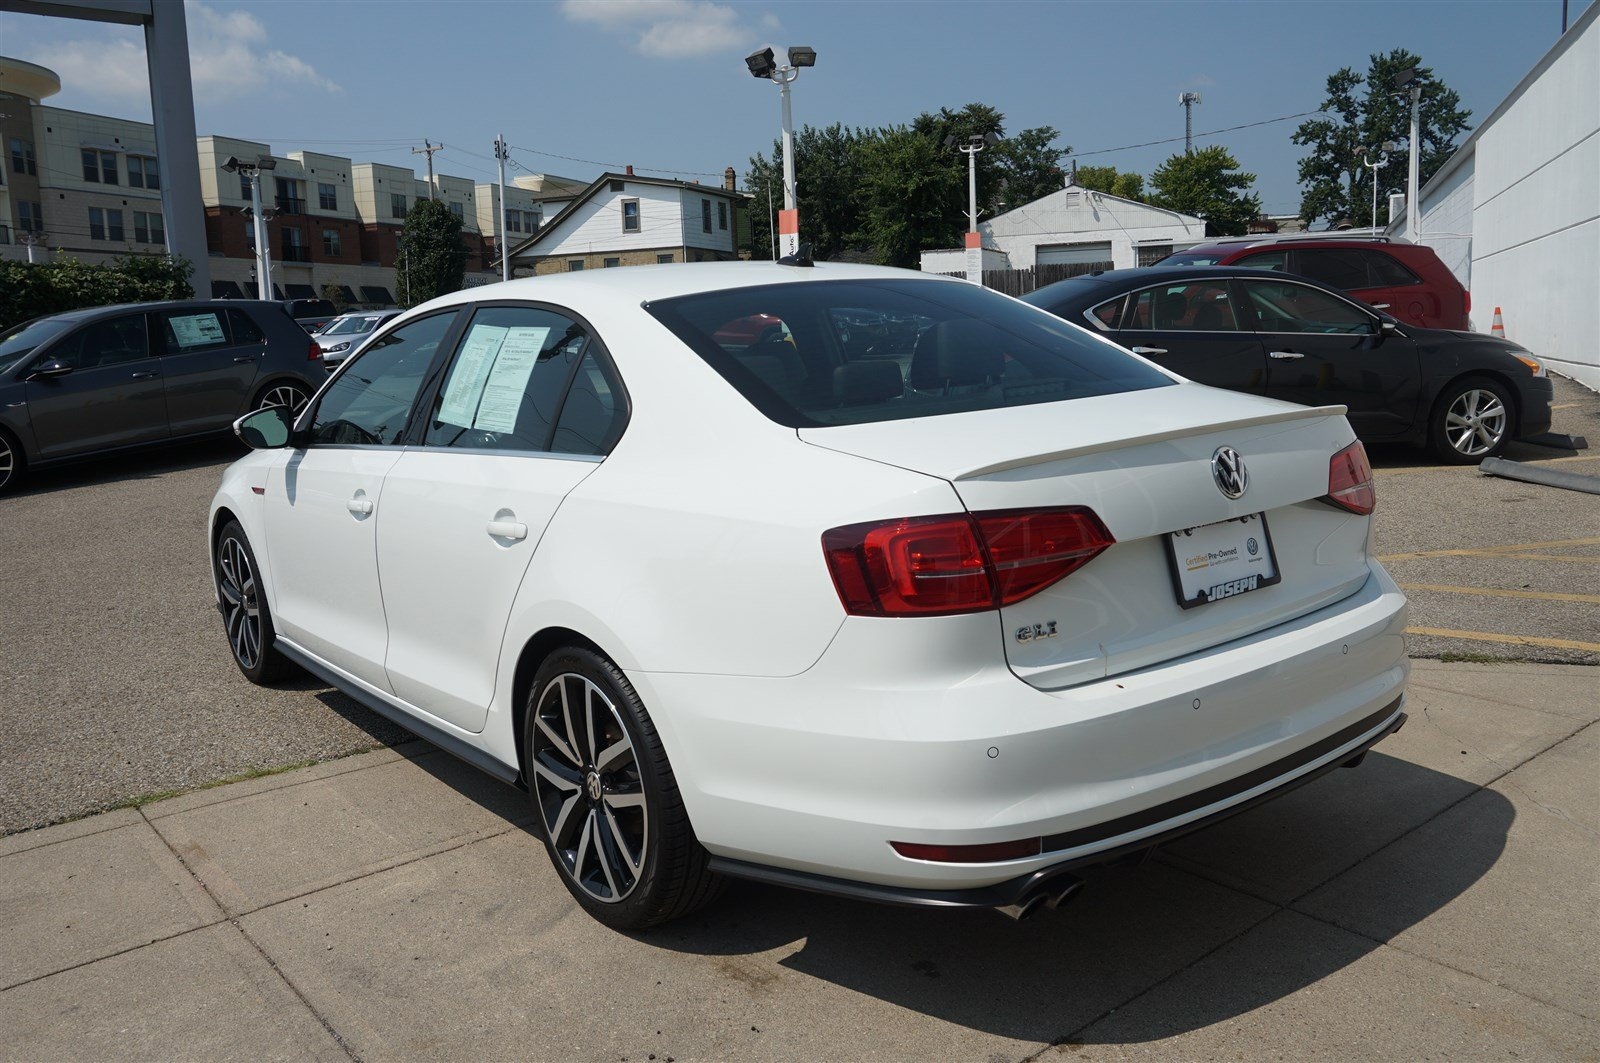 Pre Owned 2018 Volkswagen Jetta 20t Gli 4dr Car In Cincinnati Hooking Up The Vw Column Switch For Signal Lights And Headlight Dimmer